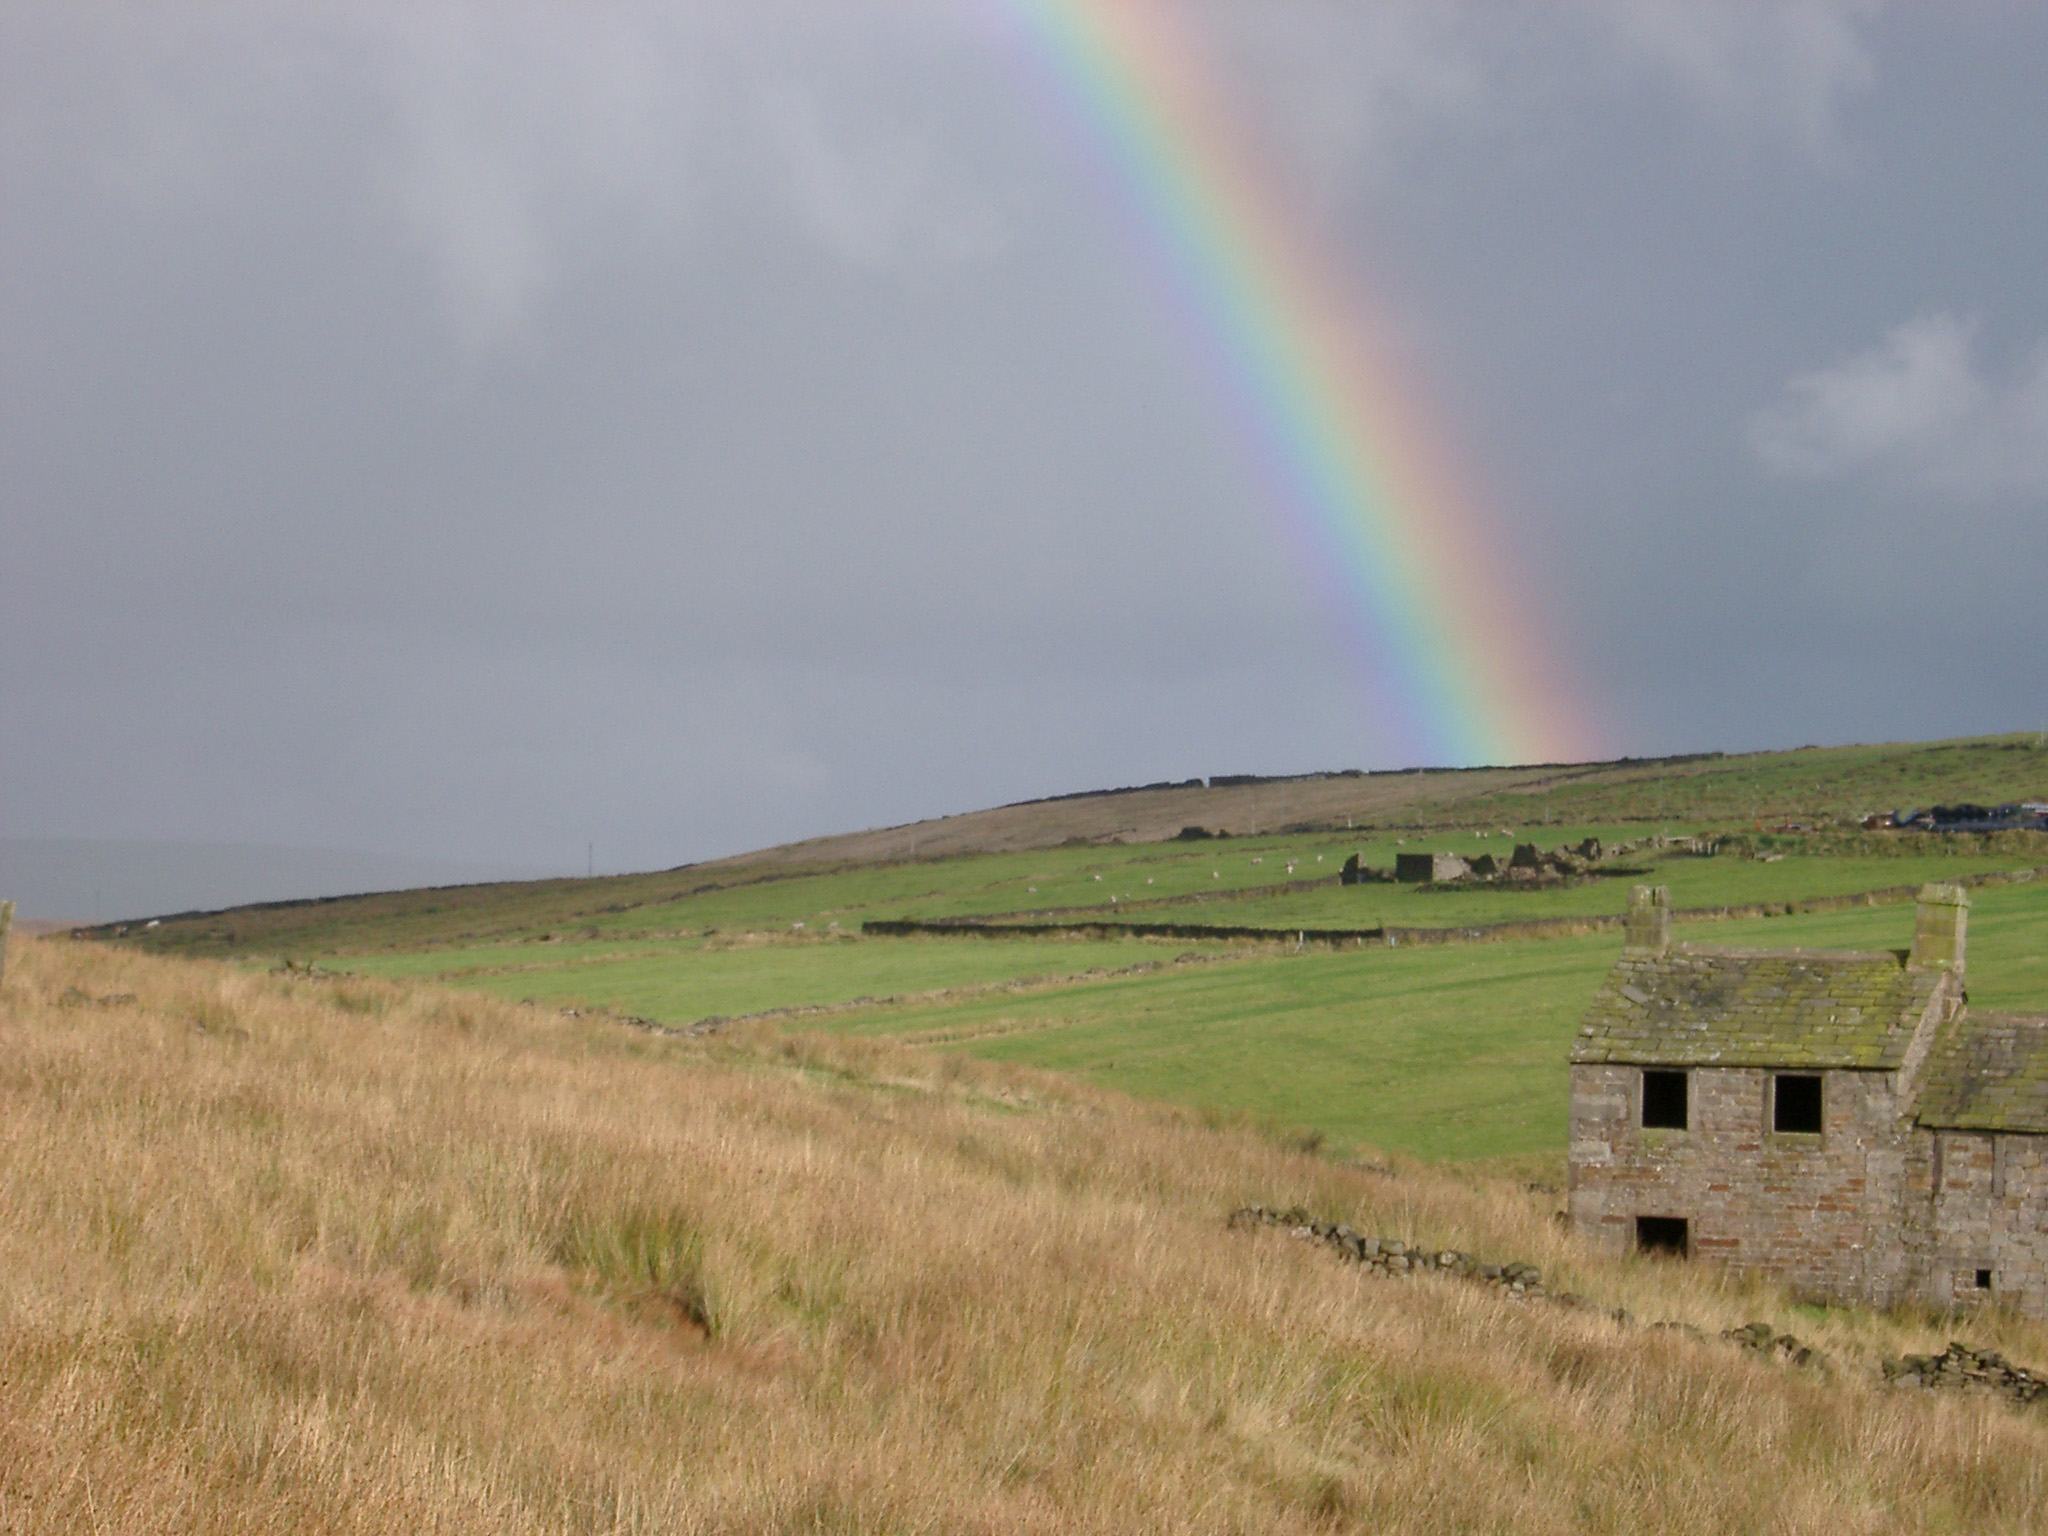 Ruined abandoned building in the Pennines on a stormy day with grey skies and a colorful rainbow